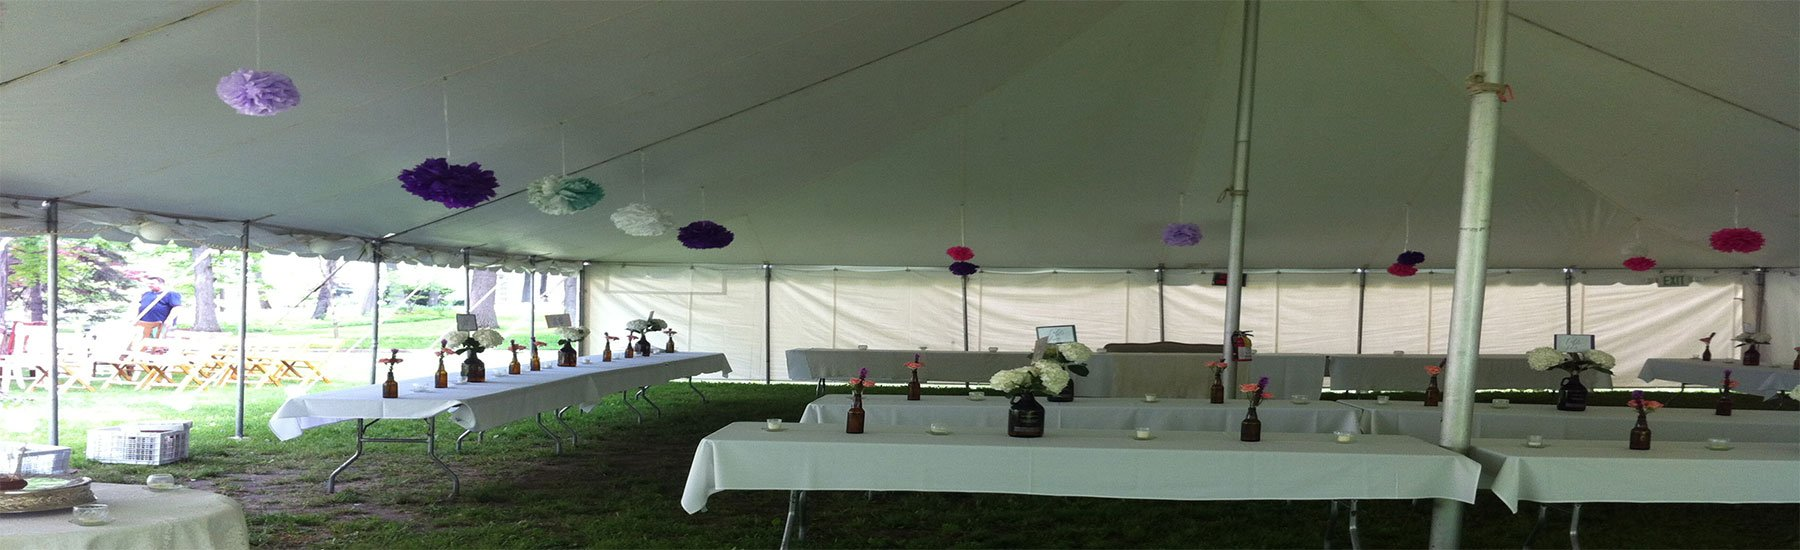 Home Indianapolis In Montgomery Tent Awning Co Inc